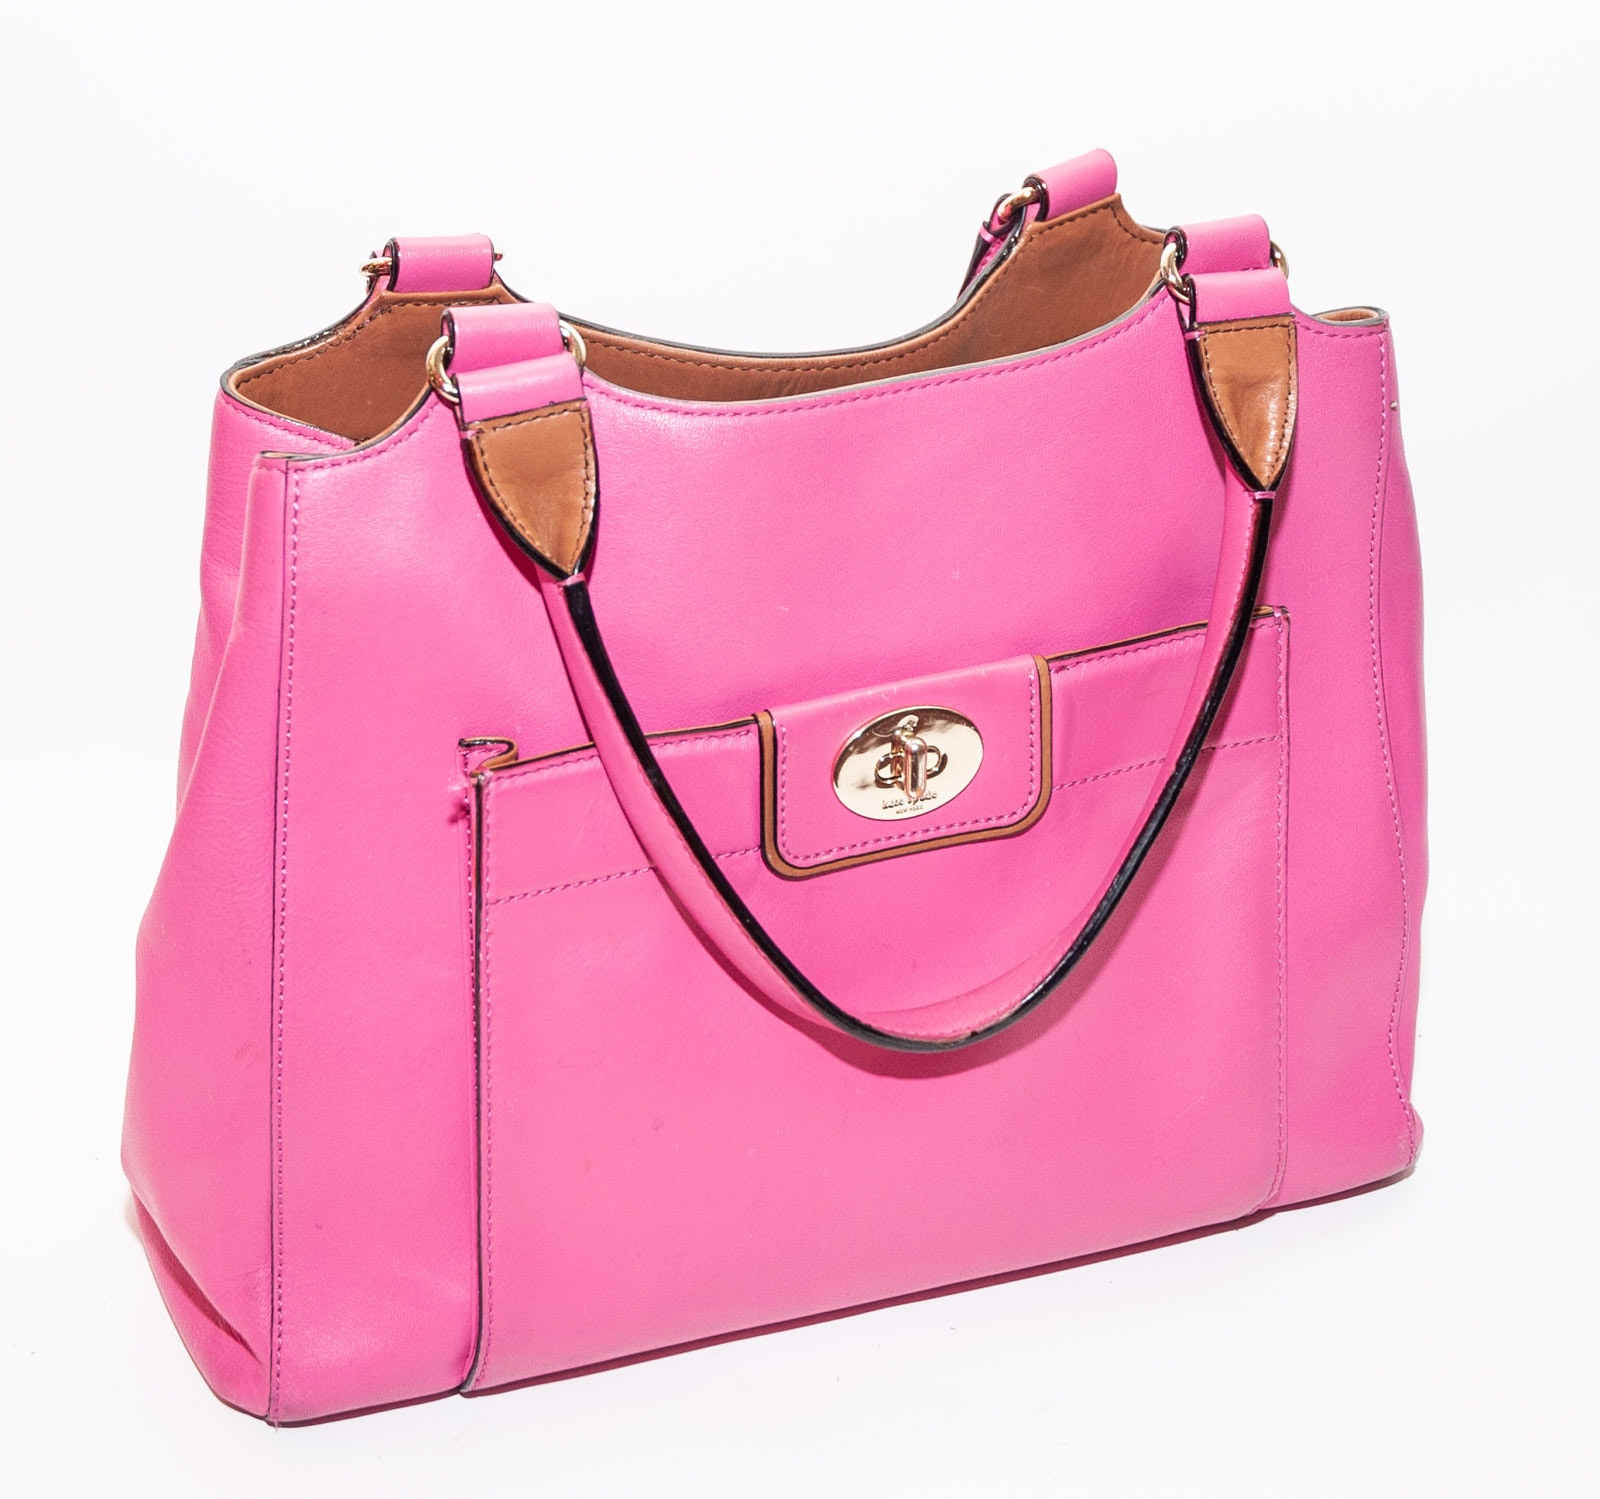 Kate Spade New York Pink and Tan Leather Handbag